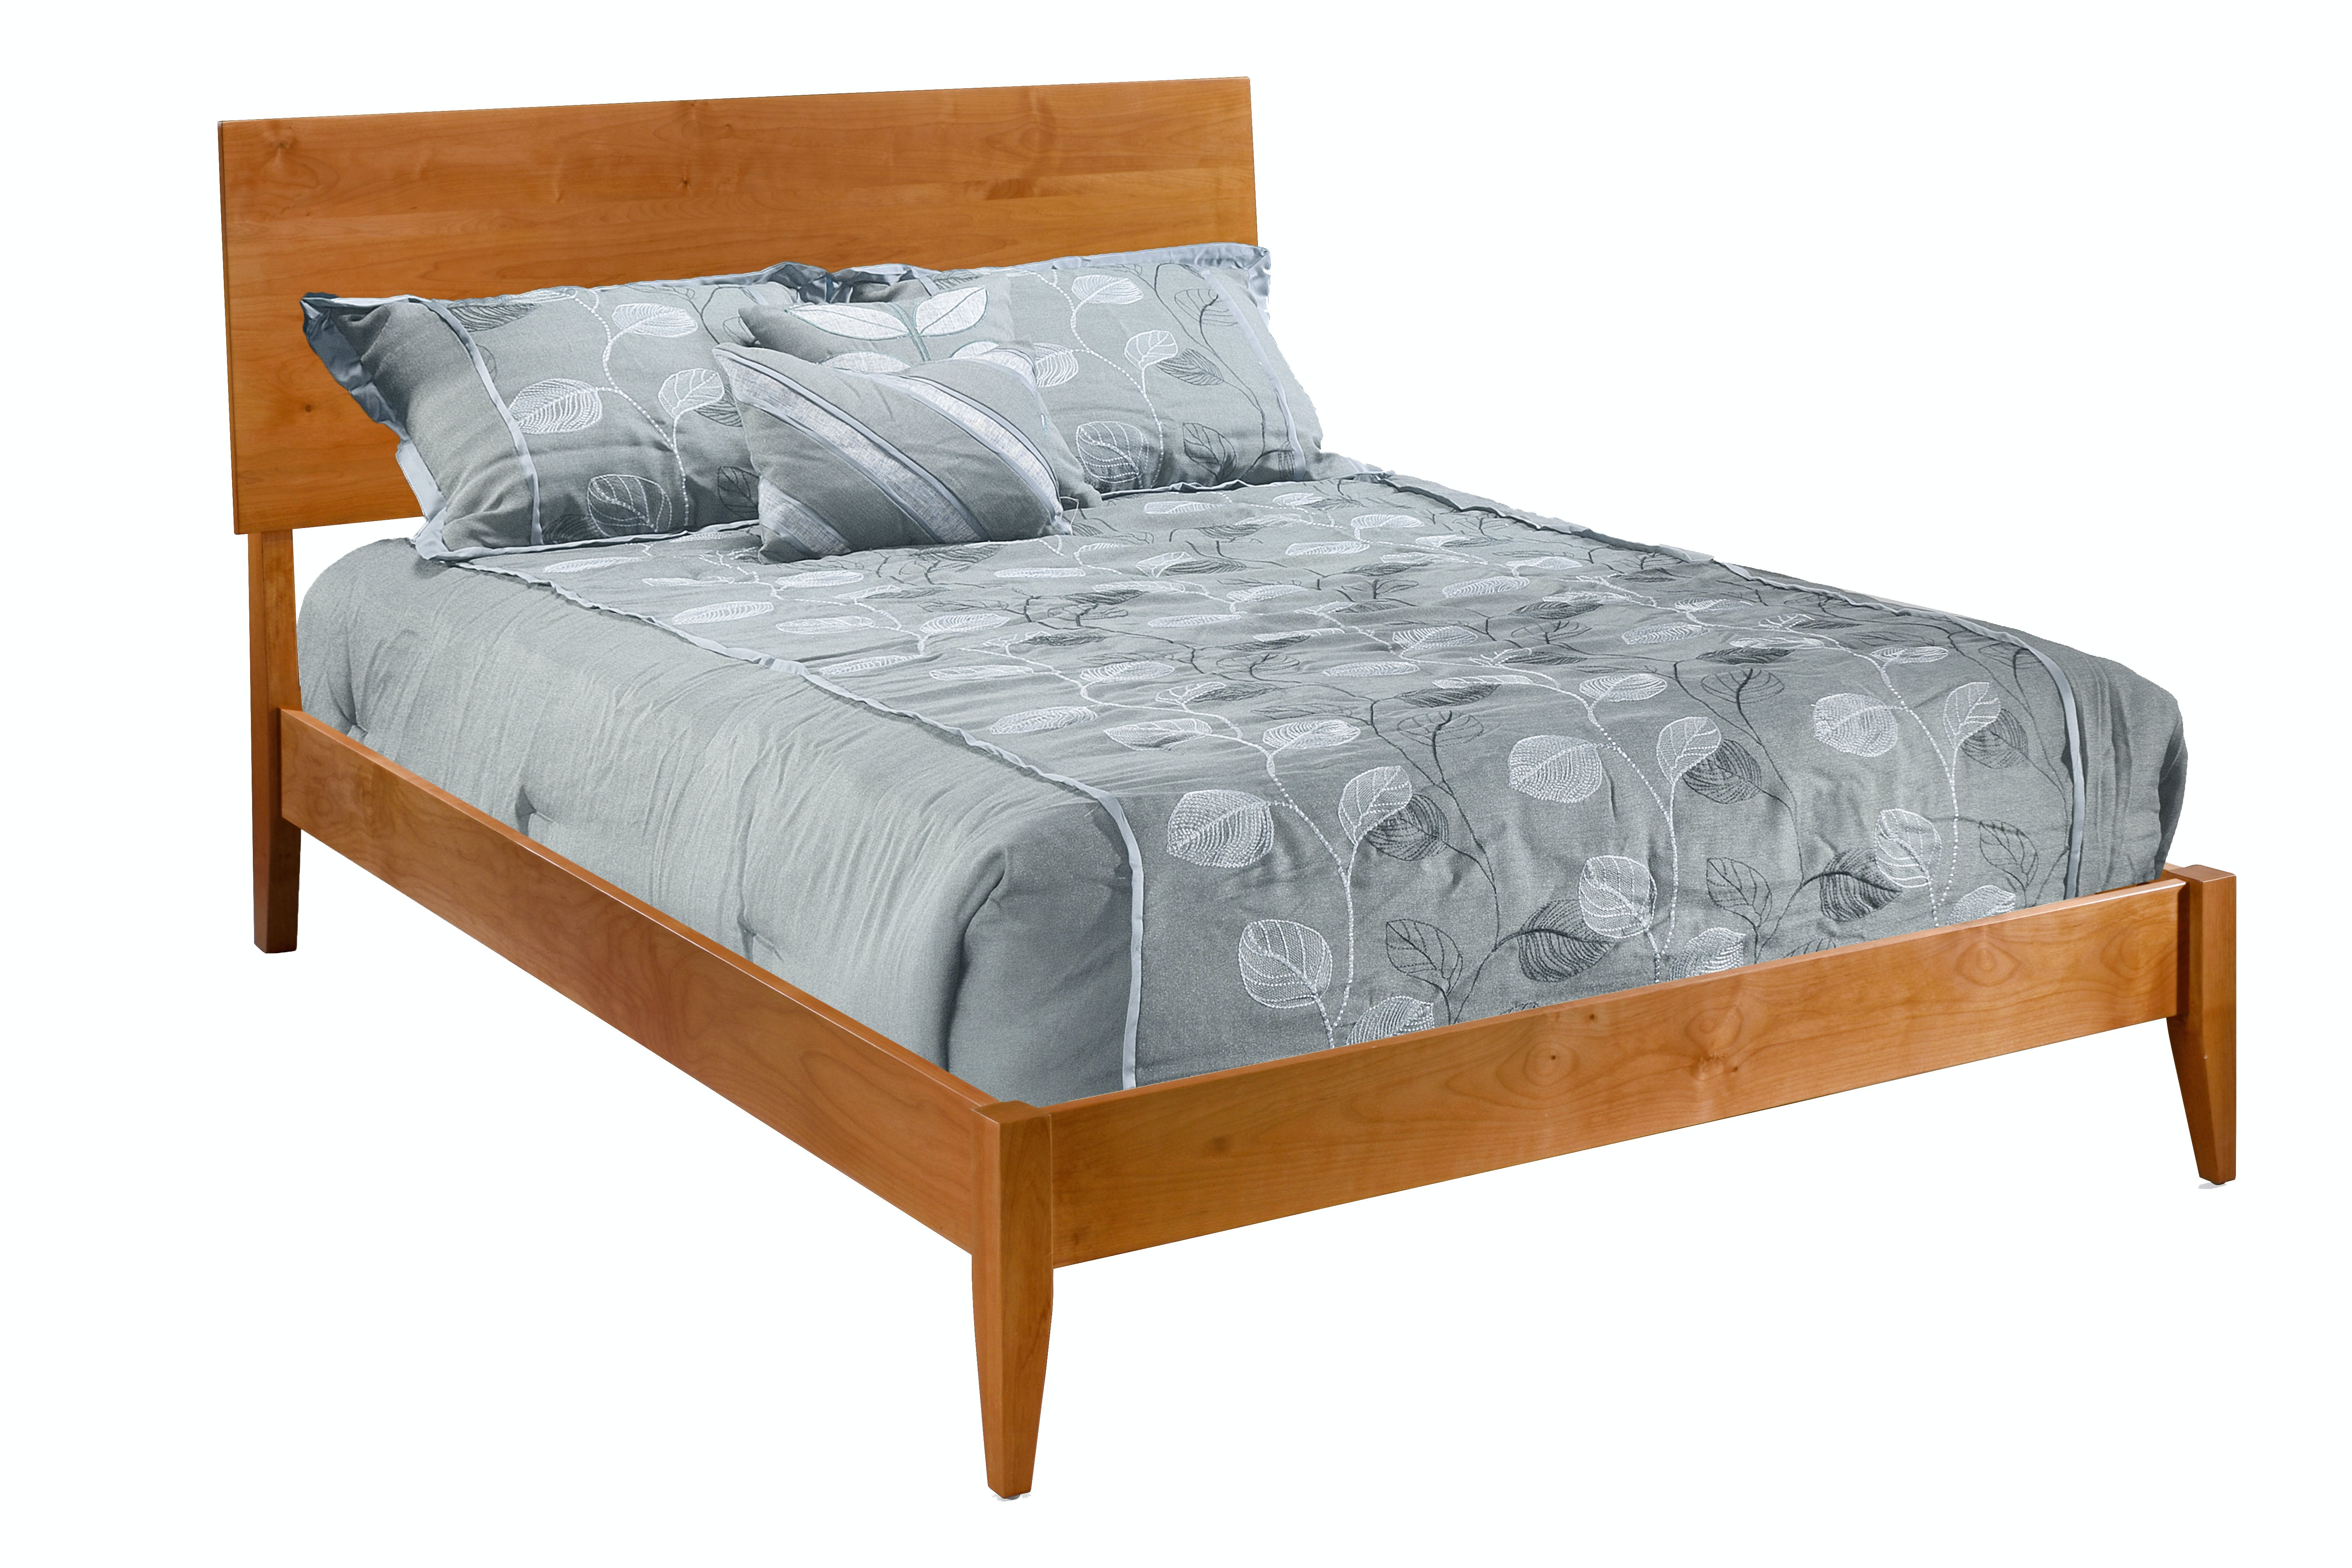 Picture of: Modern Platform Bed By Archbold Furniture Company